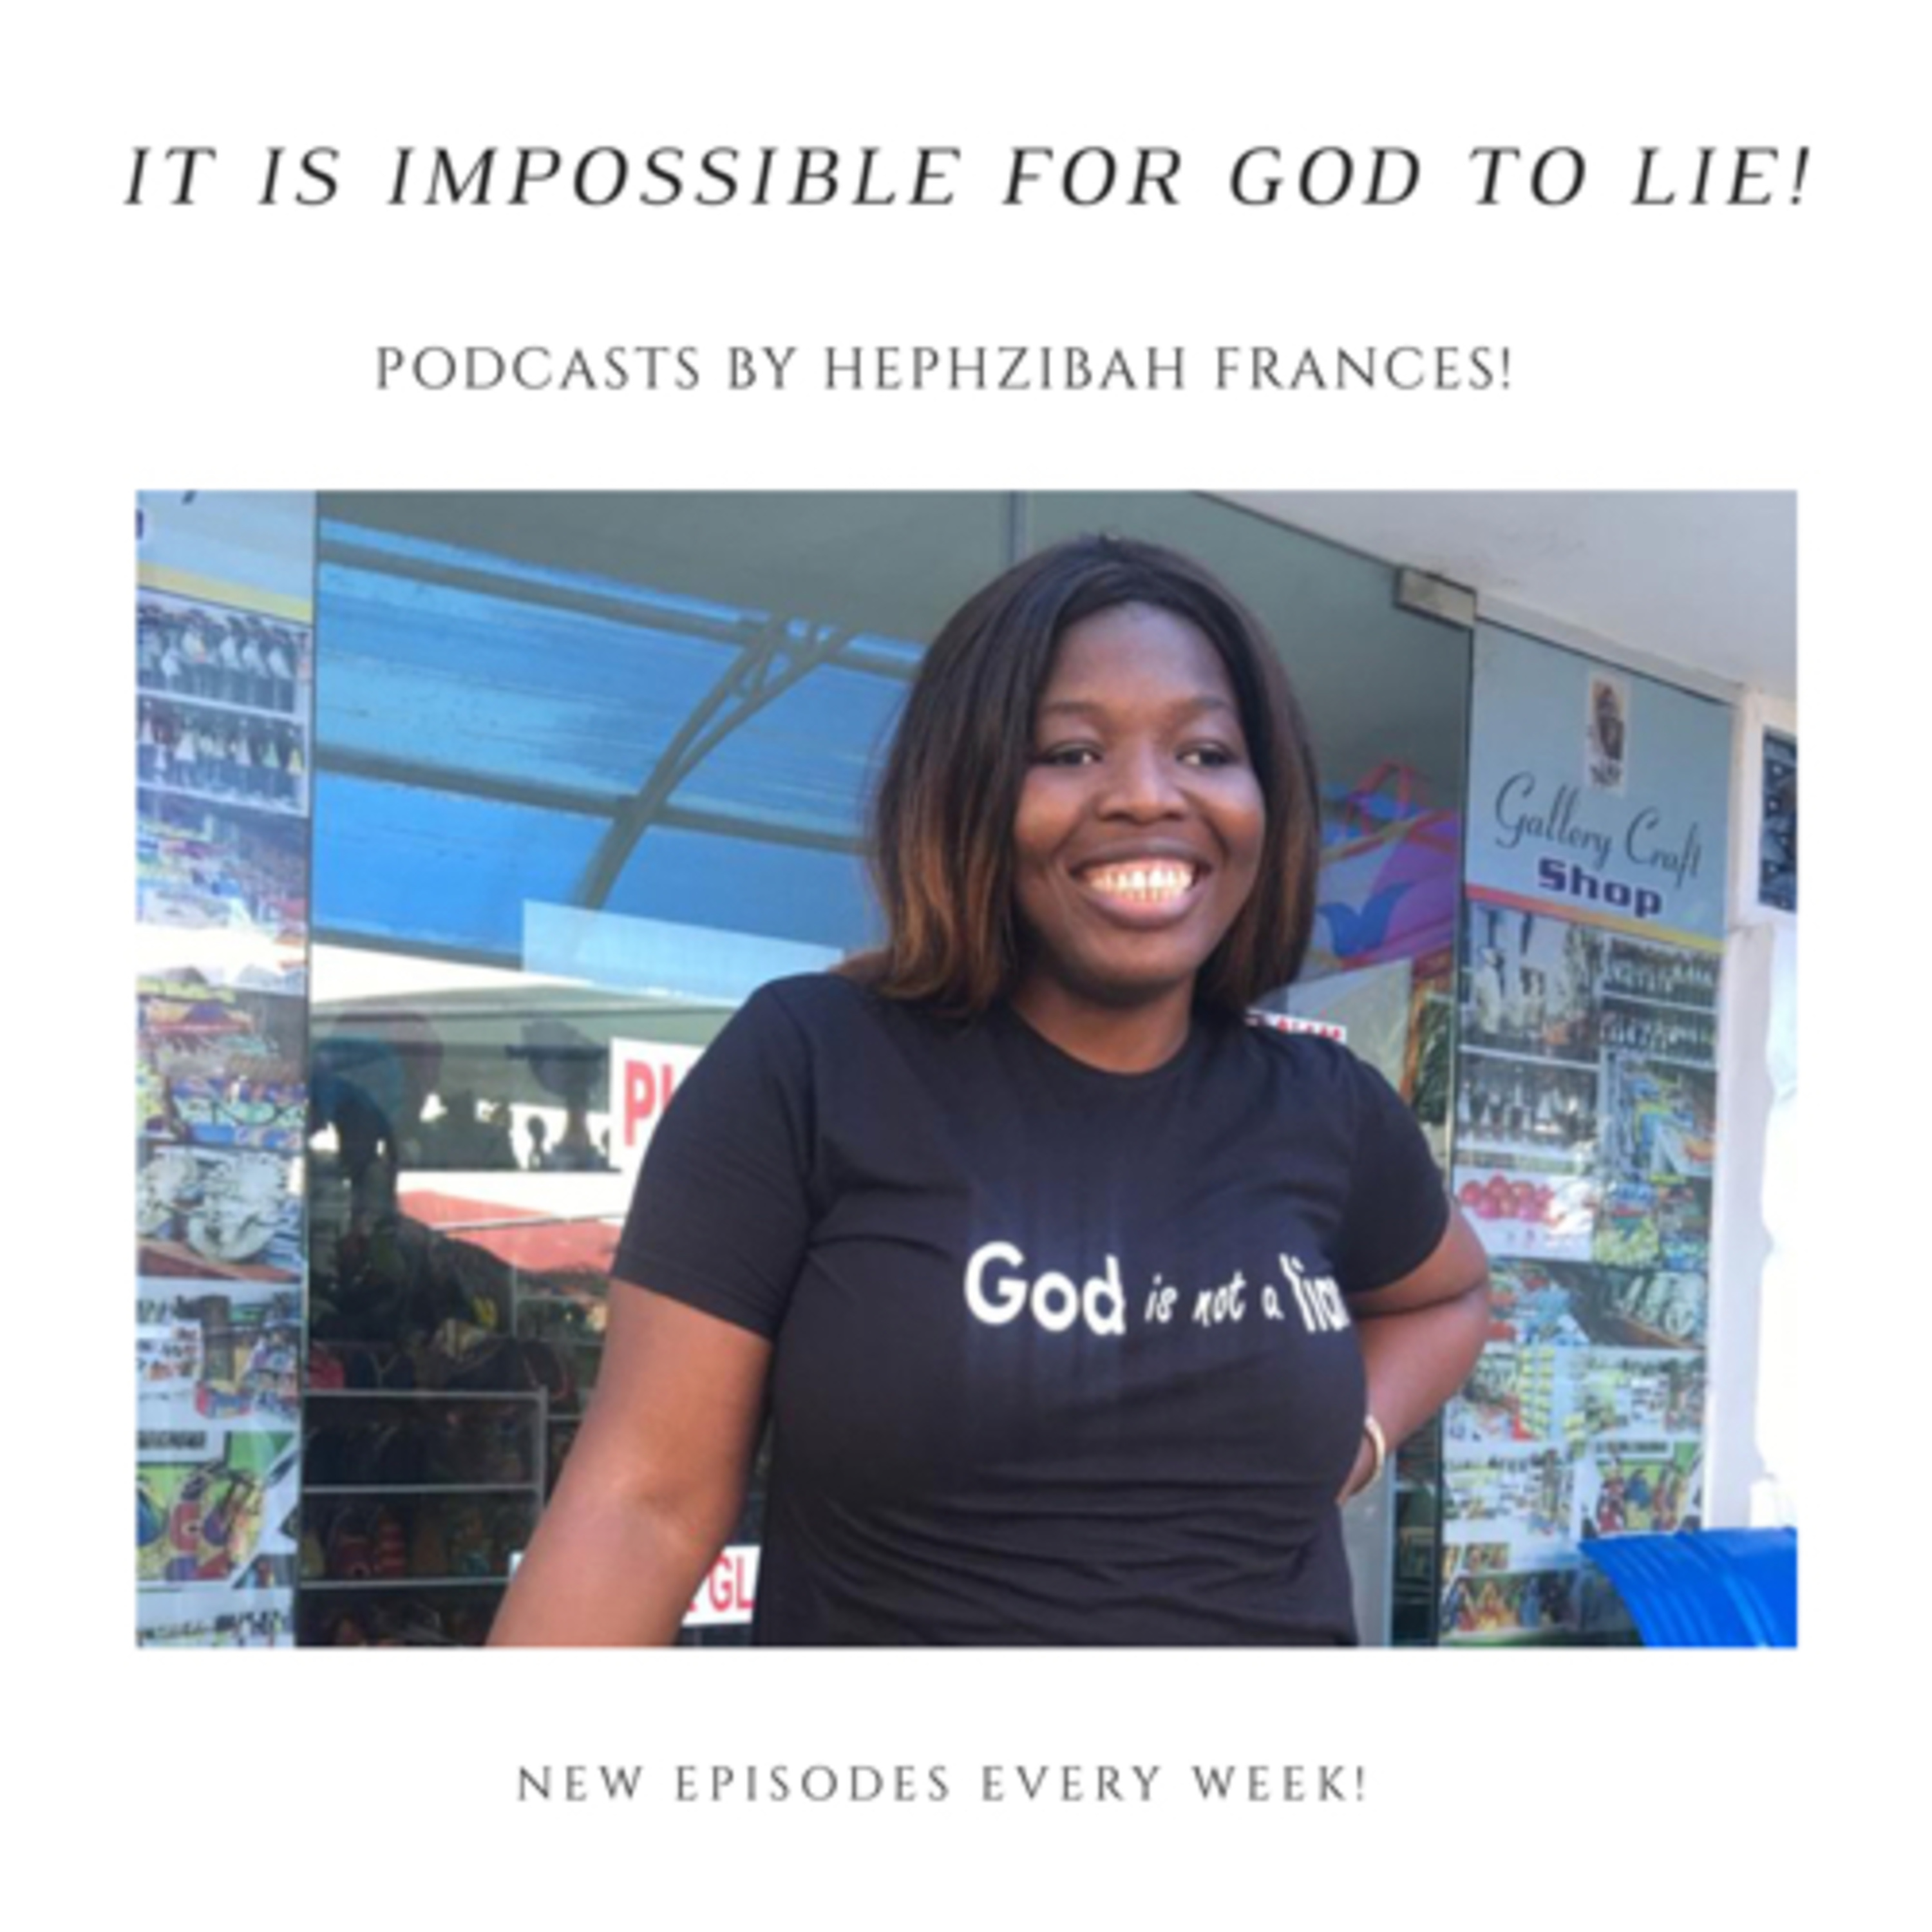 Podcasts By Hephzibah Frances on Jamit